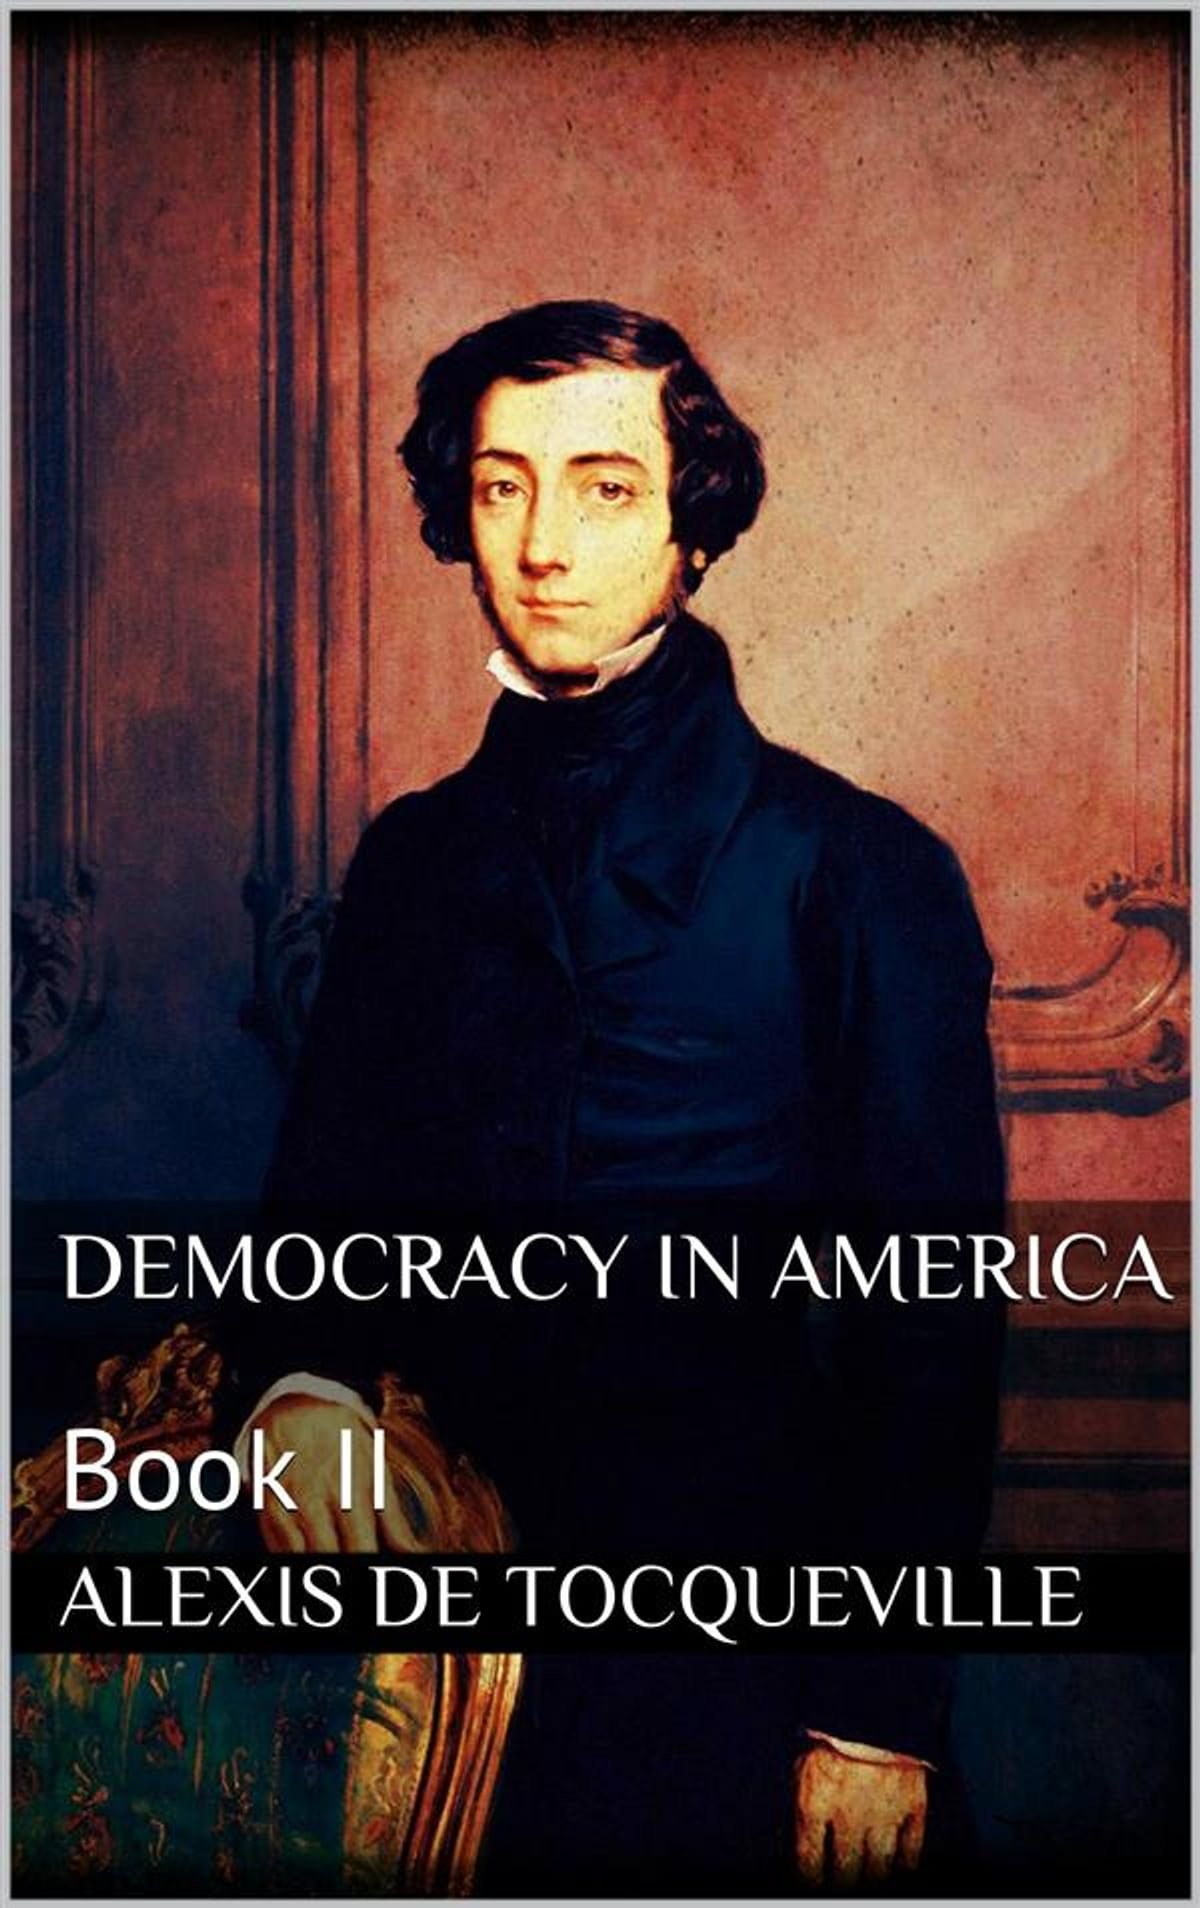 an analysis of despotism in democracy in america by alexis de tocqueville 2005-08-16 1 democracy in america alexis de tocqueville volume one book one introduction special introduction by hon john t morgan in the eleven years that separated the declaration of the independence of the united states from the.